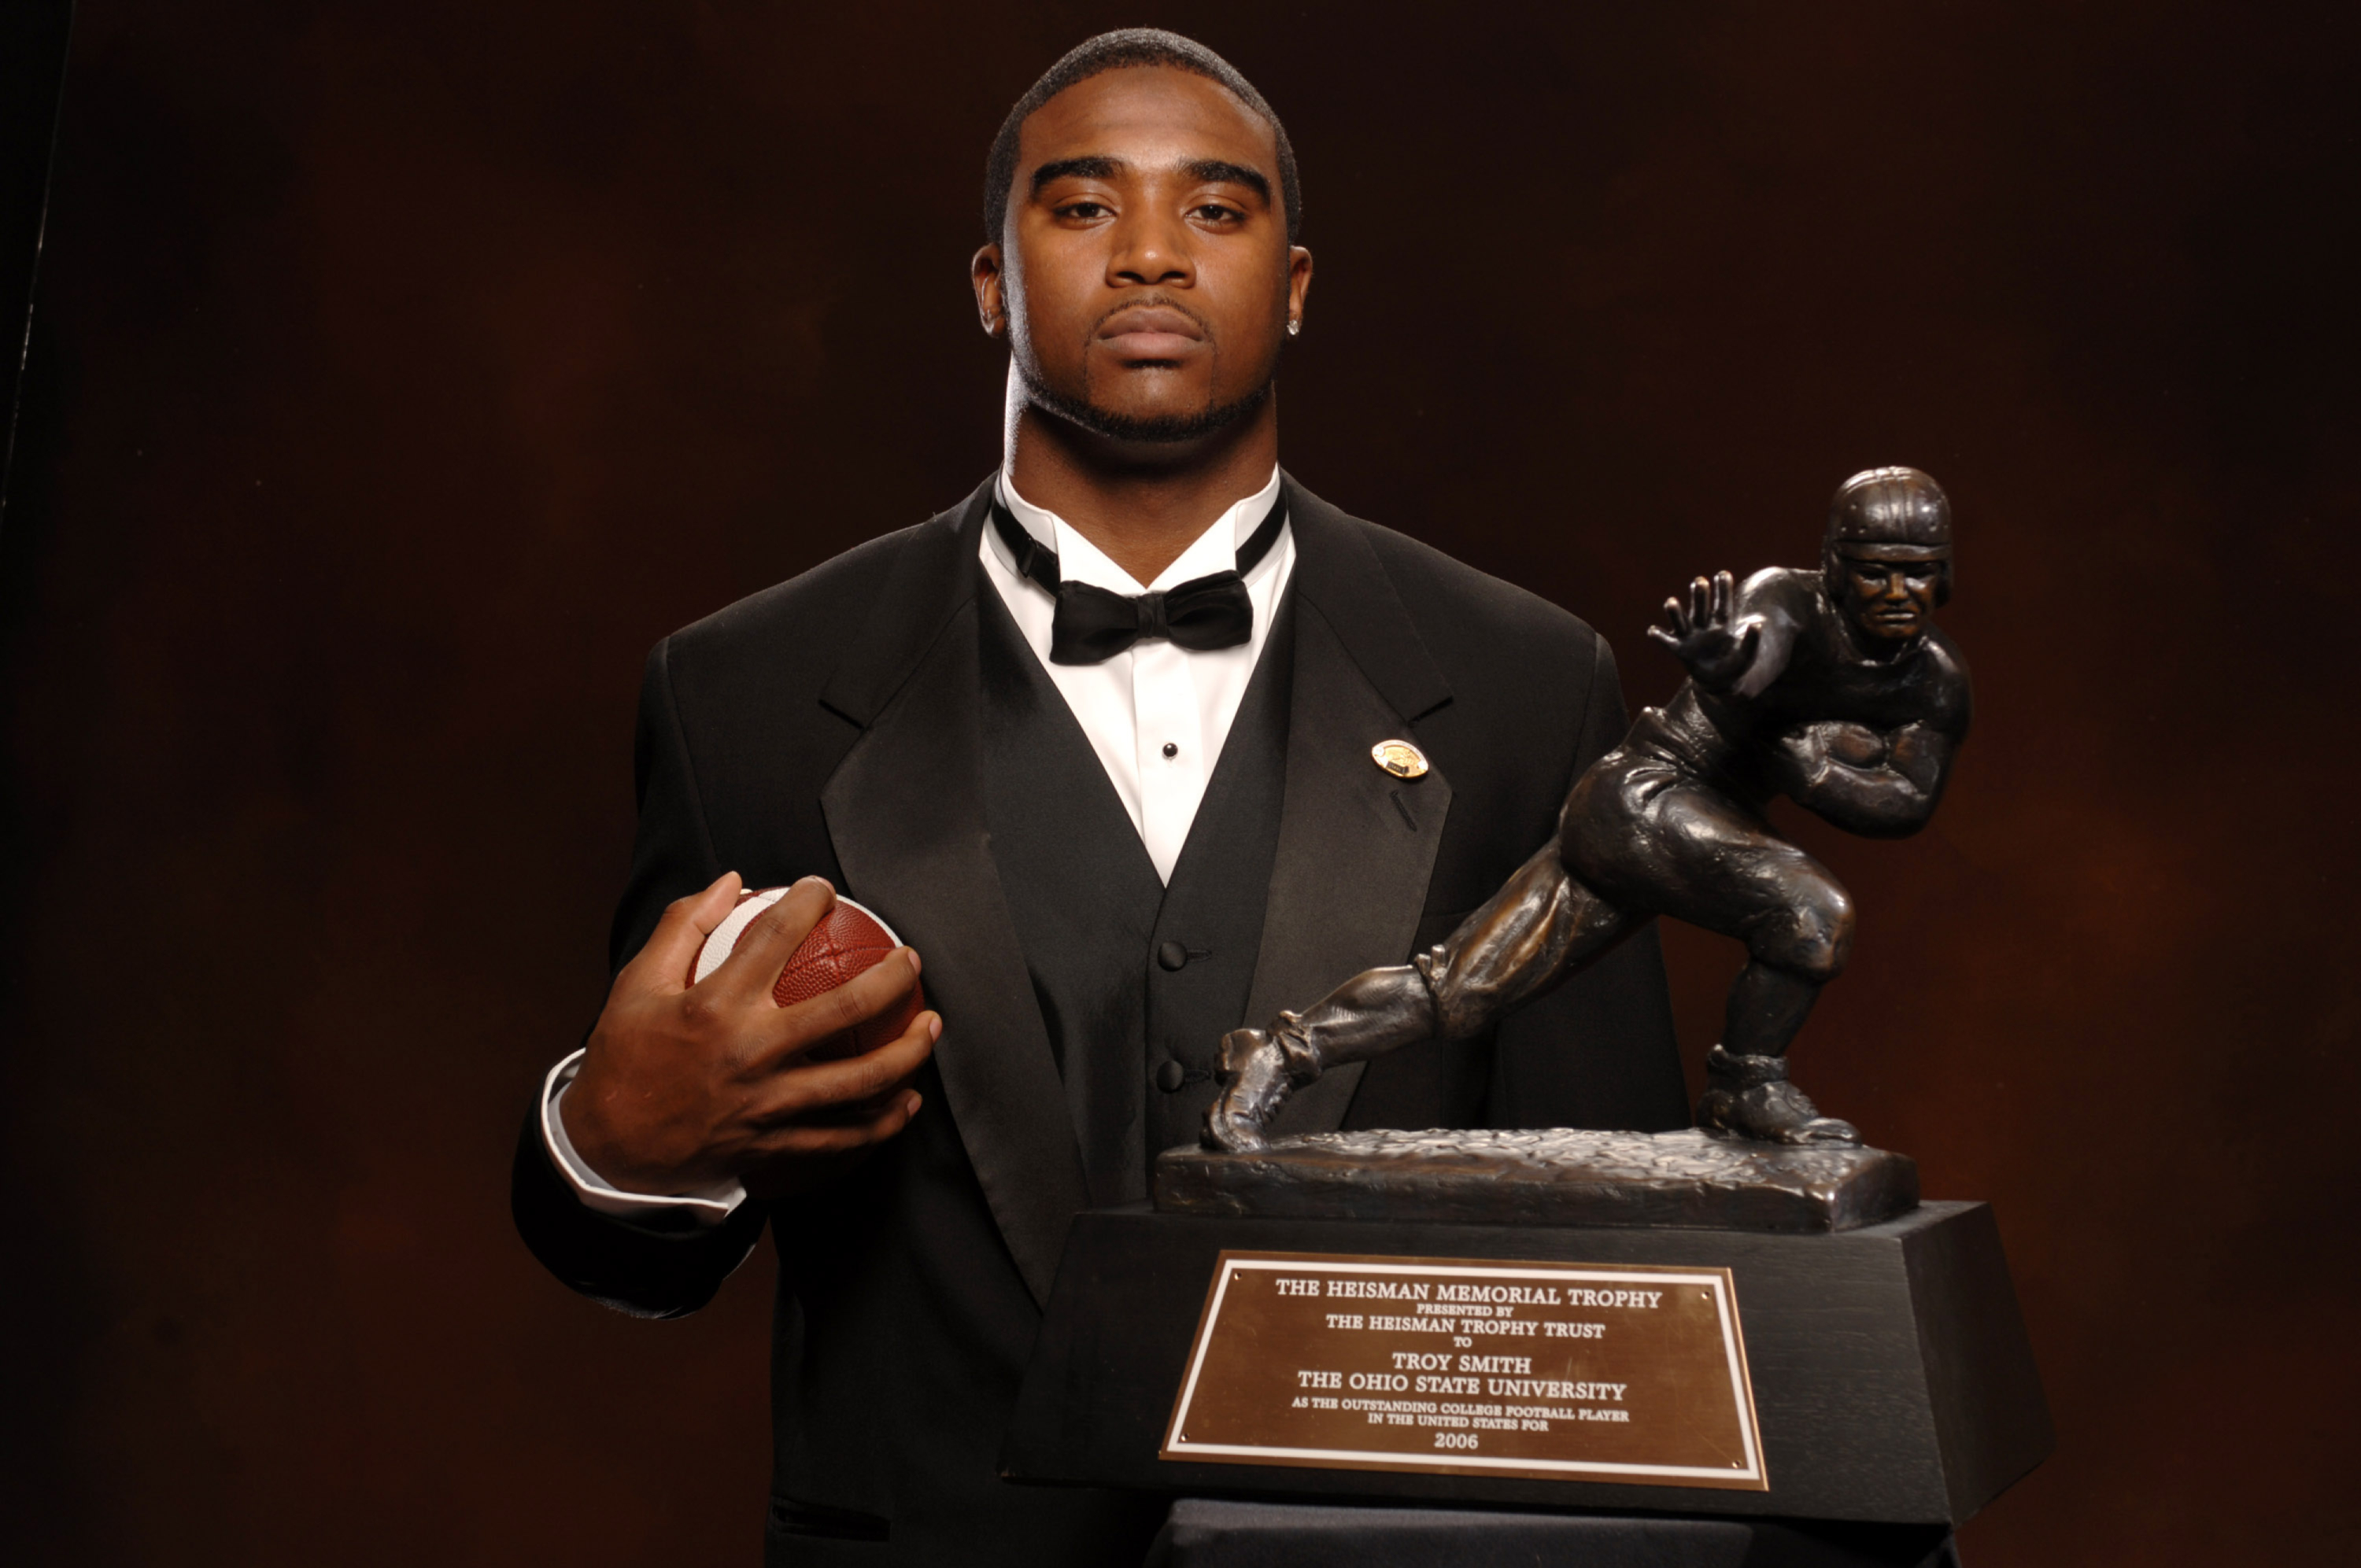 Troy Smith was a legend with the Ohio State Buckeyes as he ultimately won a Heisman. He had some bad luck during his NFL career, though.